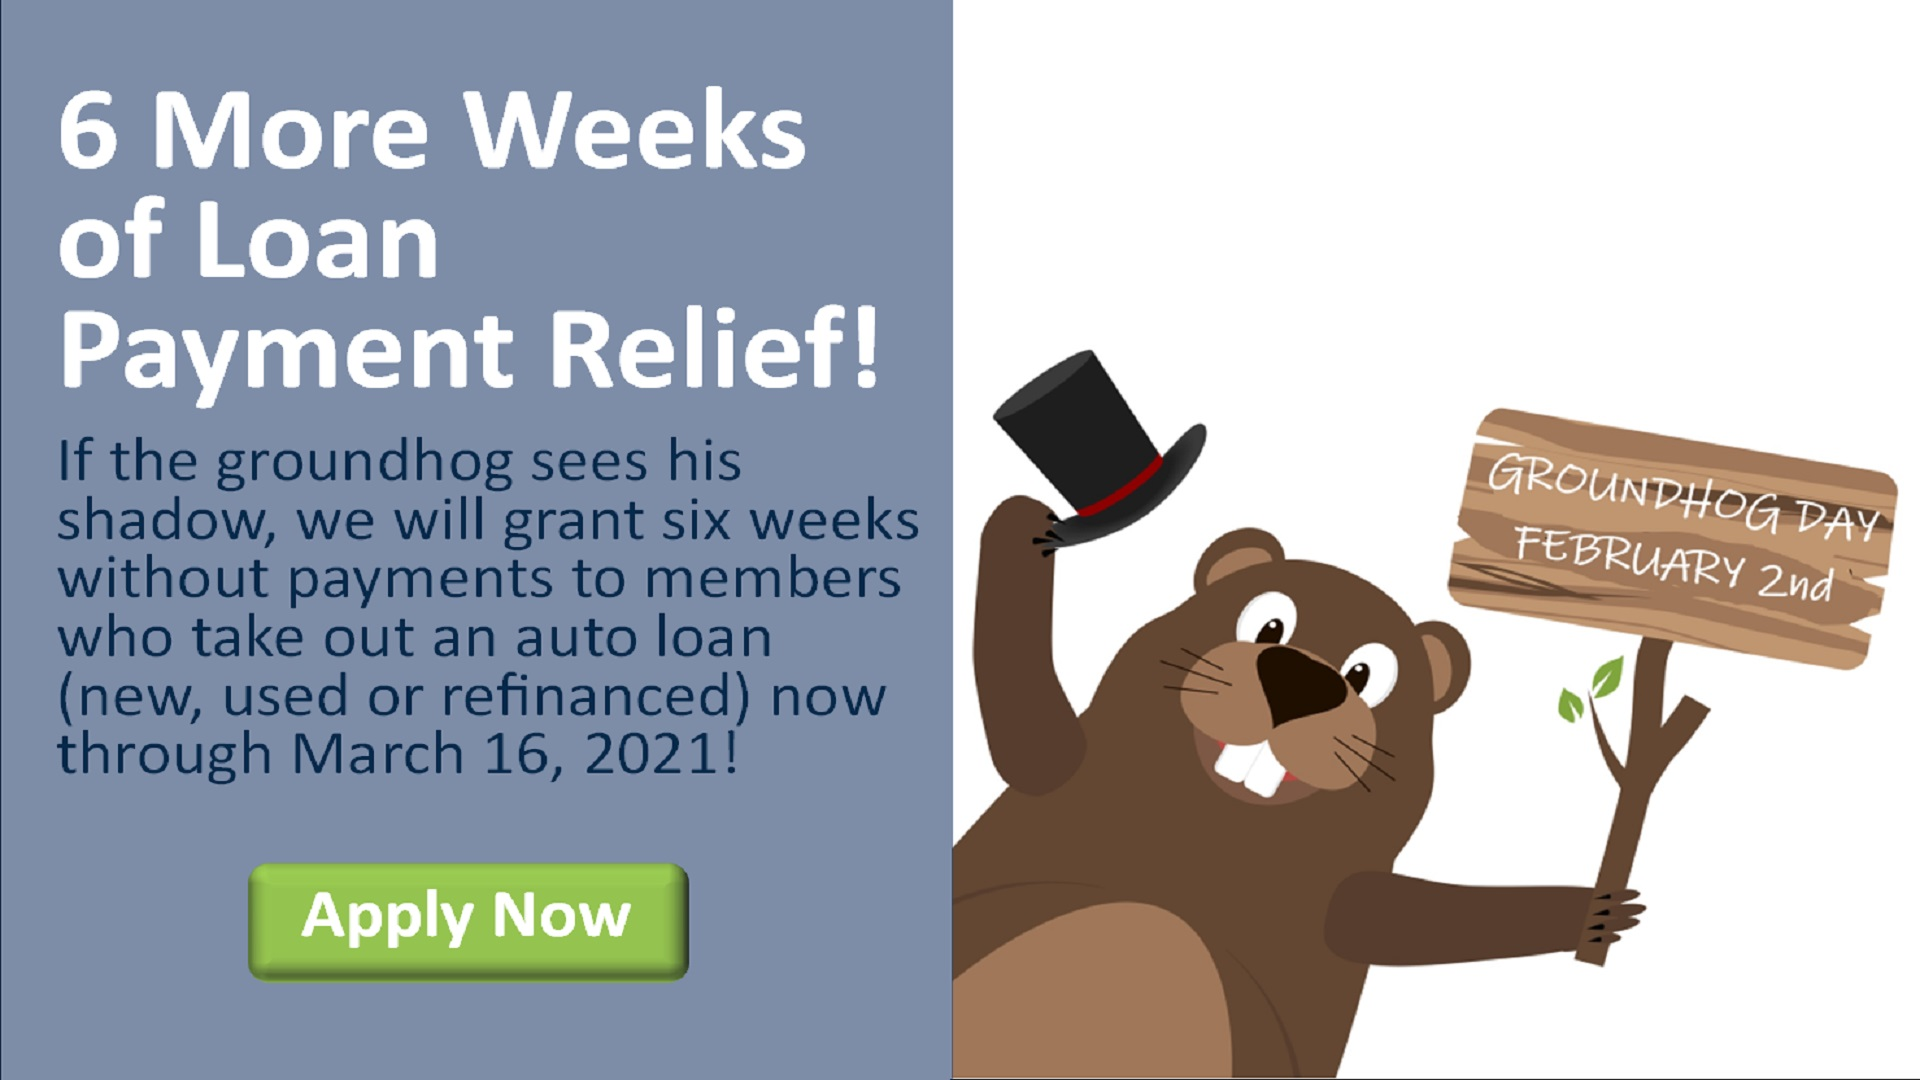 6 More Weeks of Loan Payment Relief